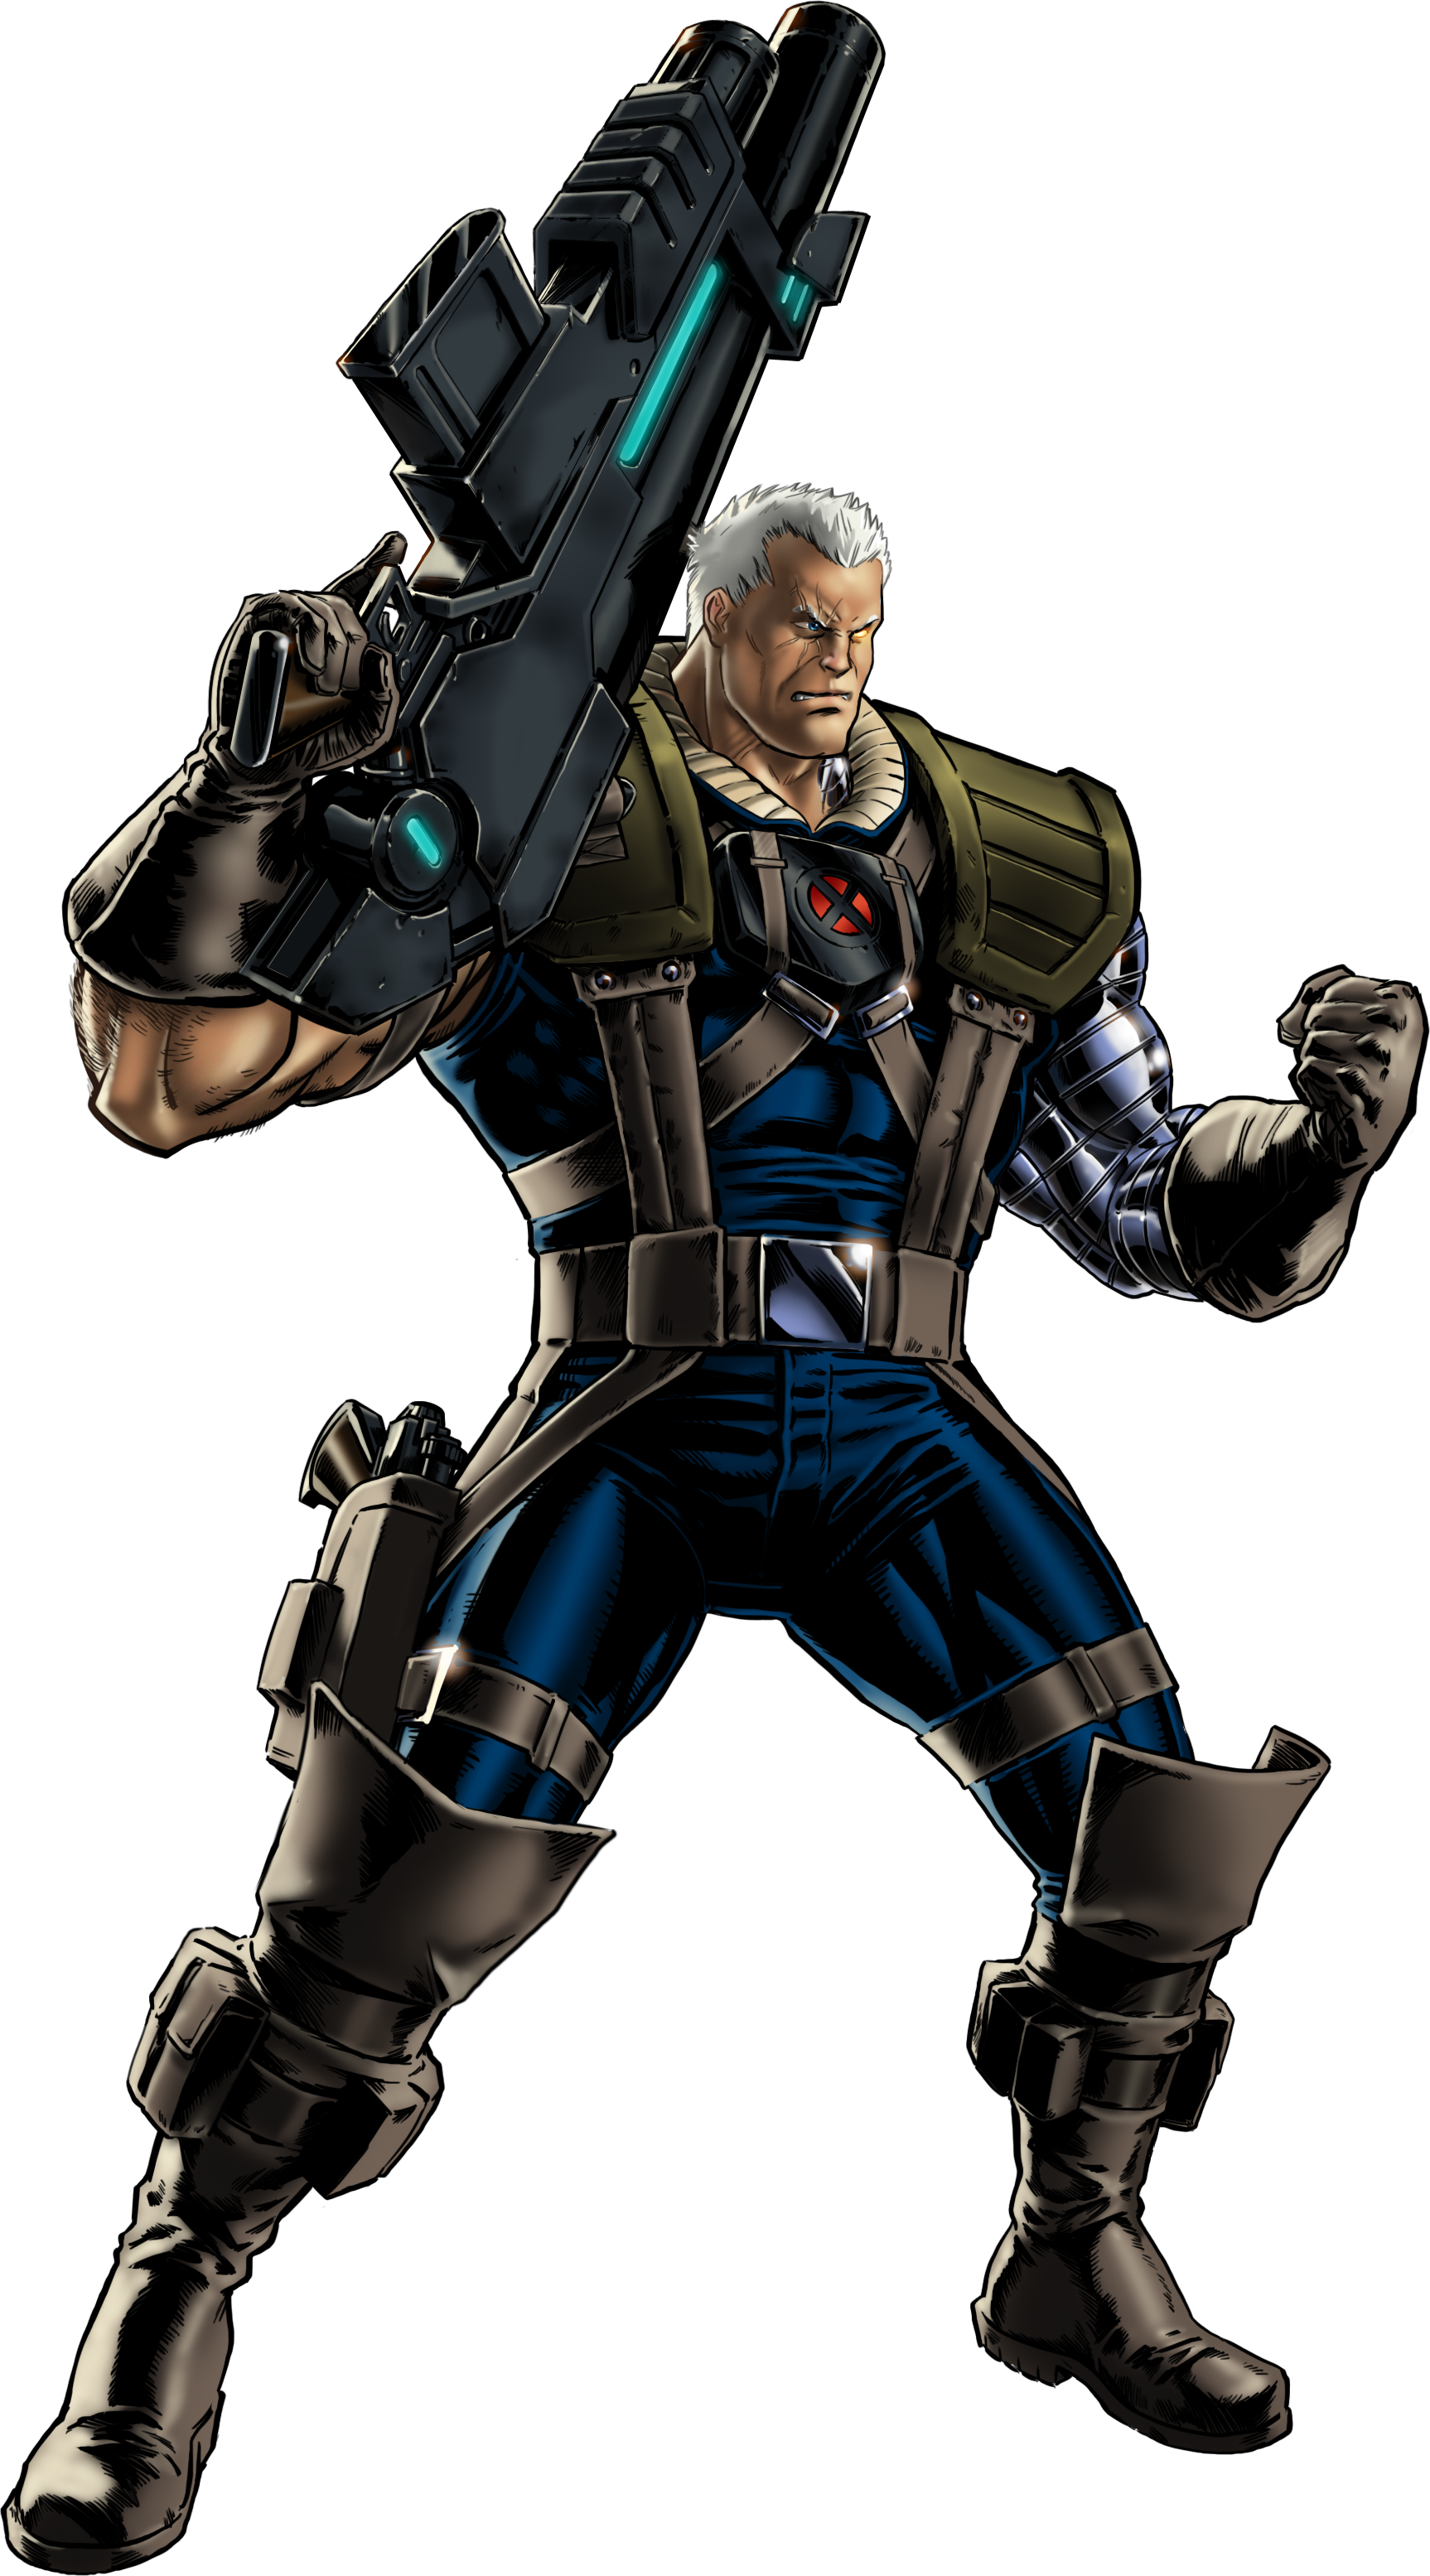 Cable Marvel Comics Vs Battles Wiki Fandom Powered By Wikia